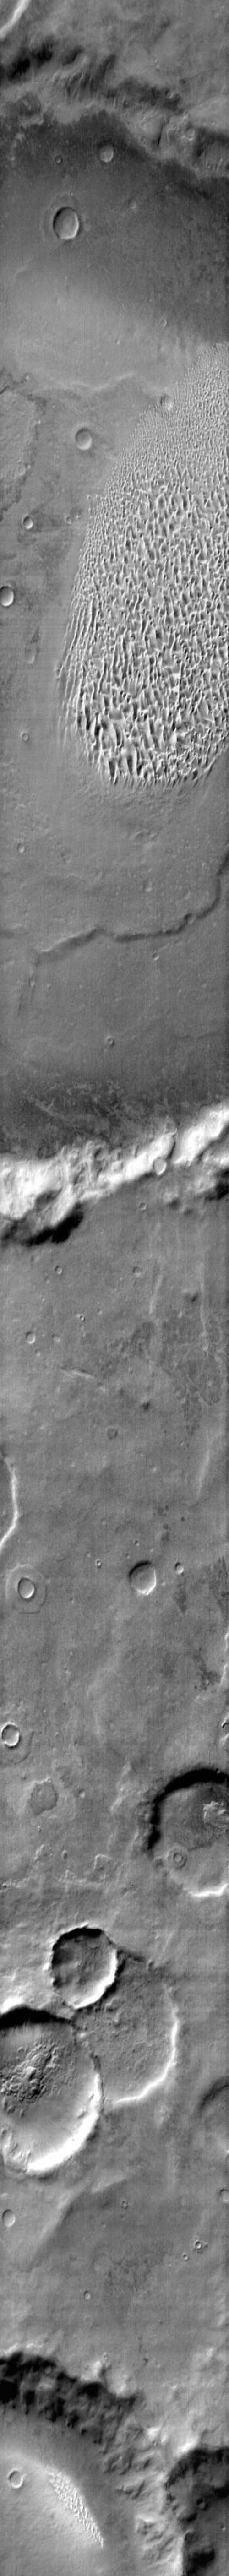 This image from NASA's Mars Odyssey shows a sand sheet with dune forms located on the floor of Proctor Crater on Mars.